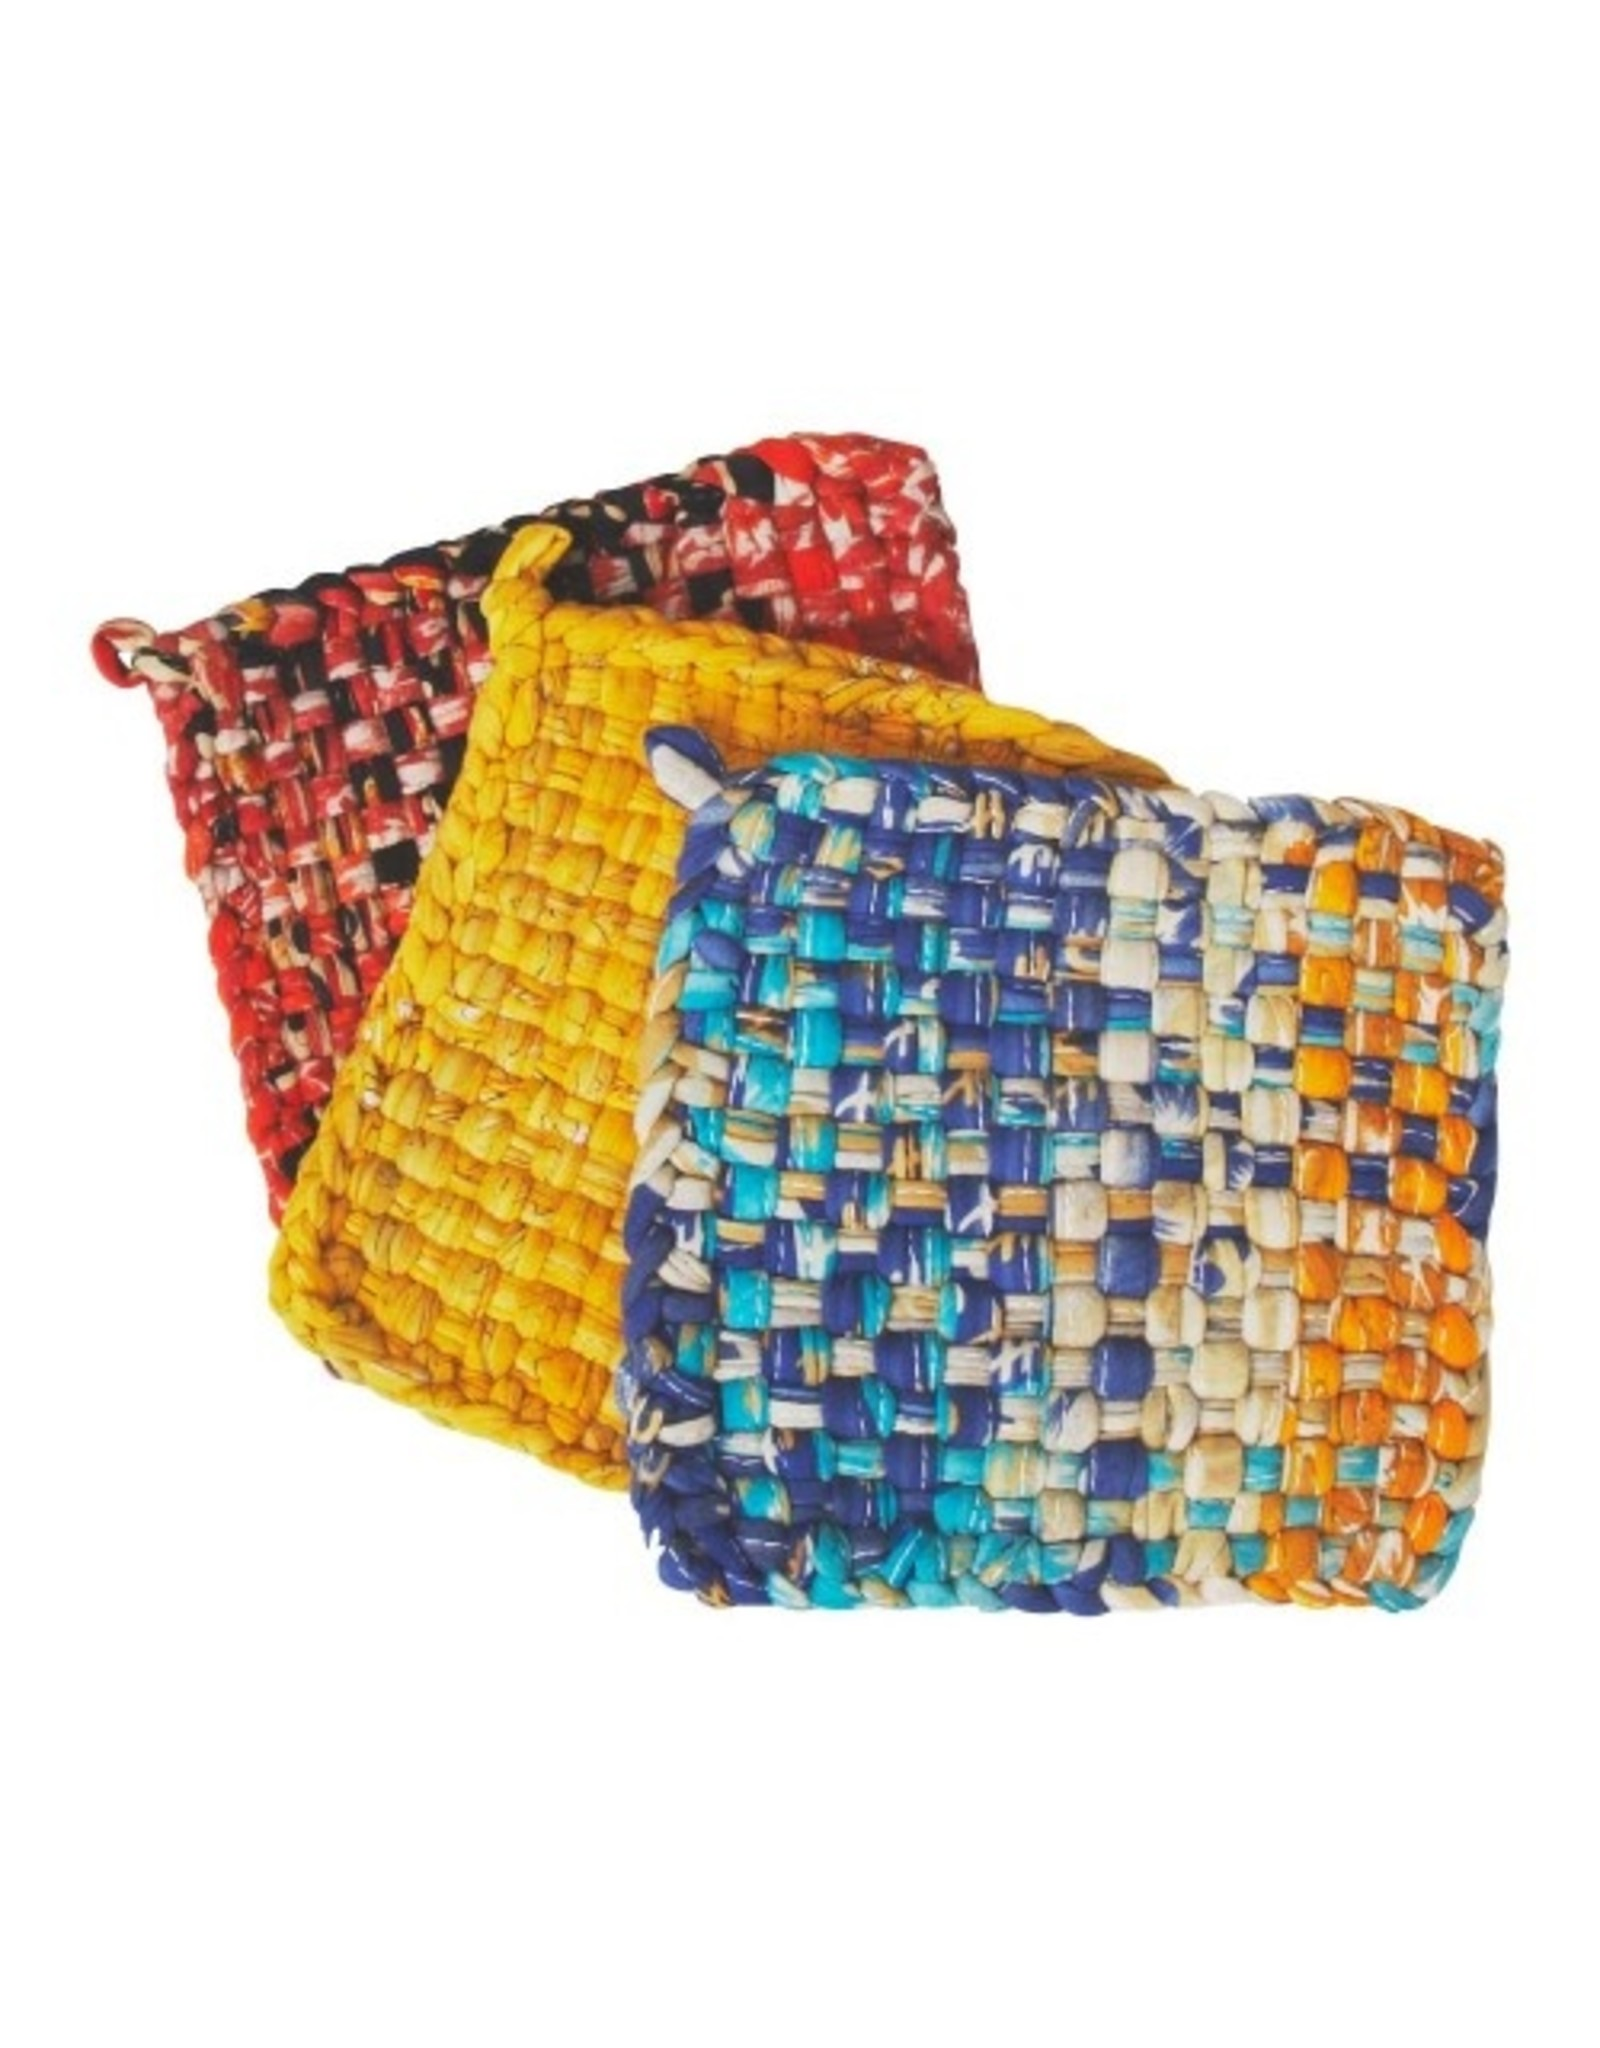 Recycled Woven Hot Mats, Set of 3